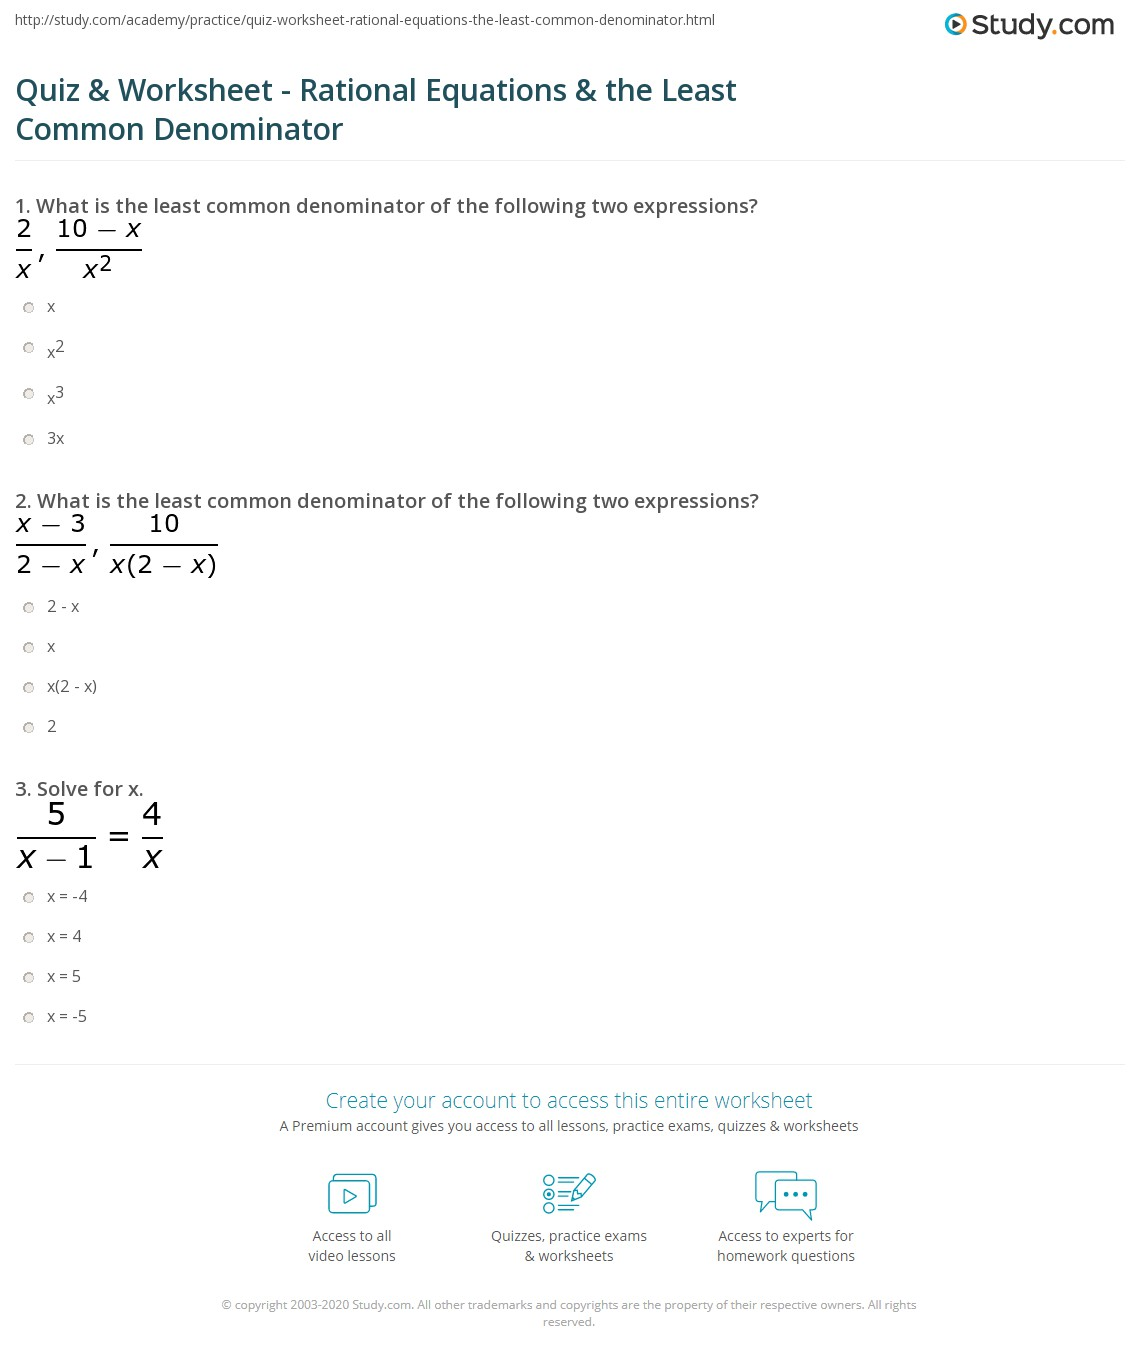 Quiz & Worksheet - Rational Equations & the Least Common ...